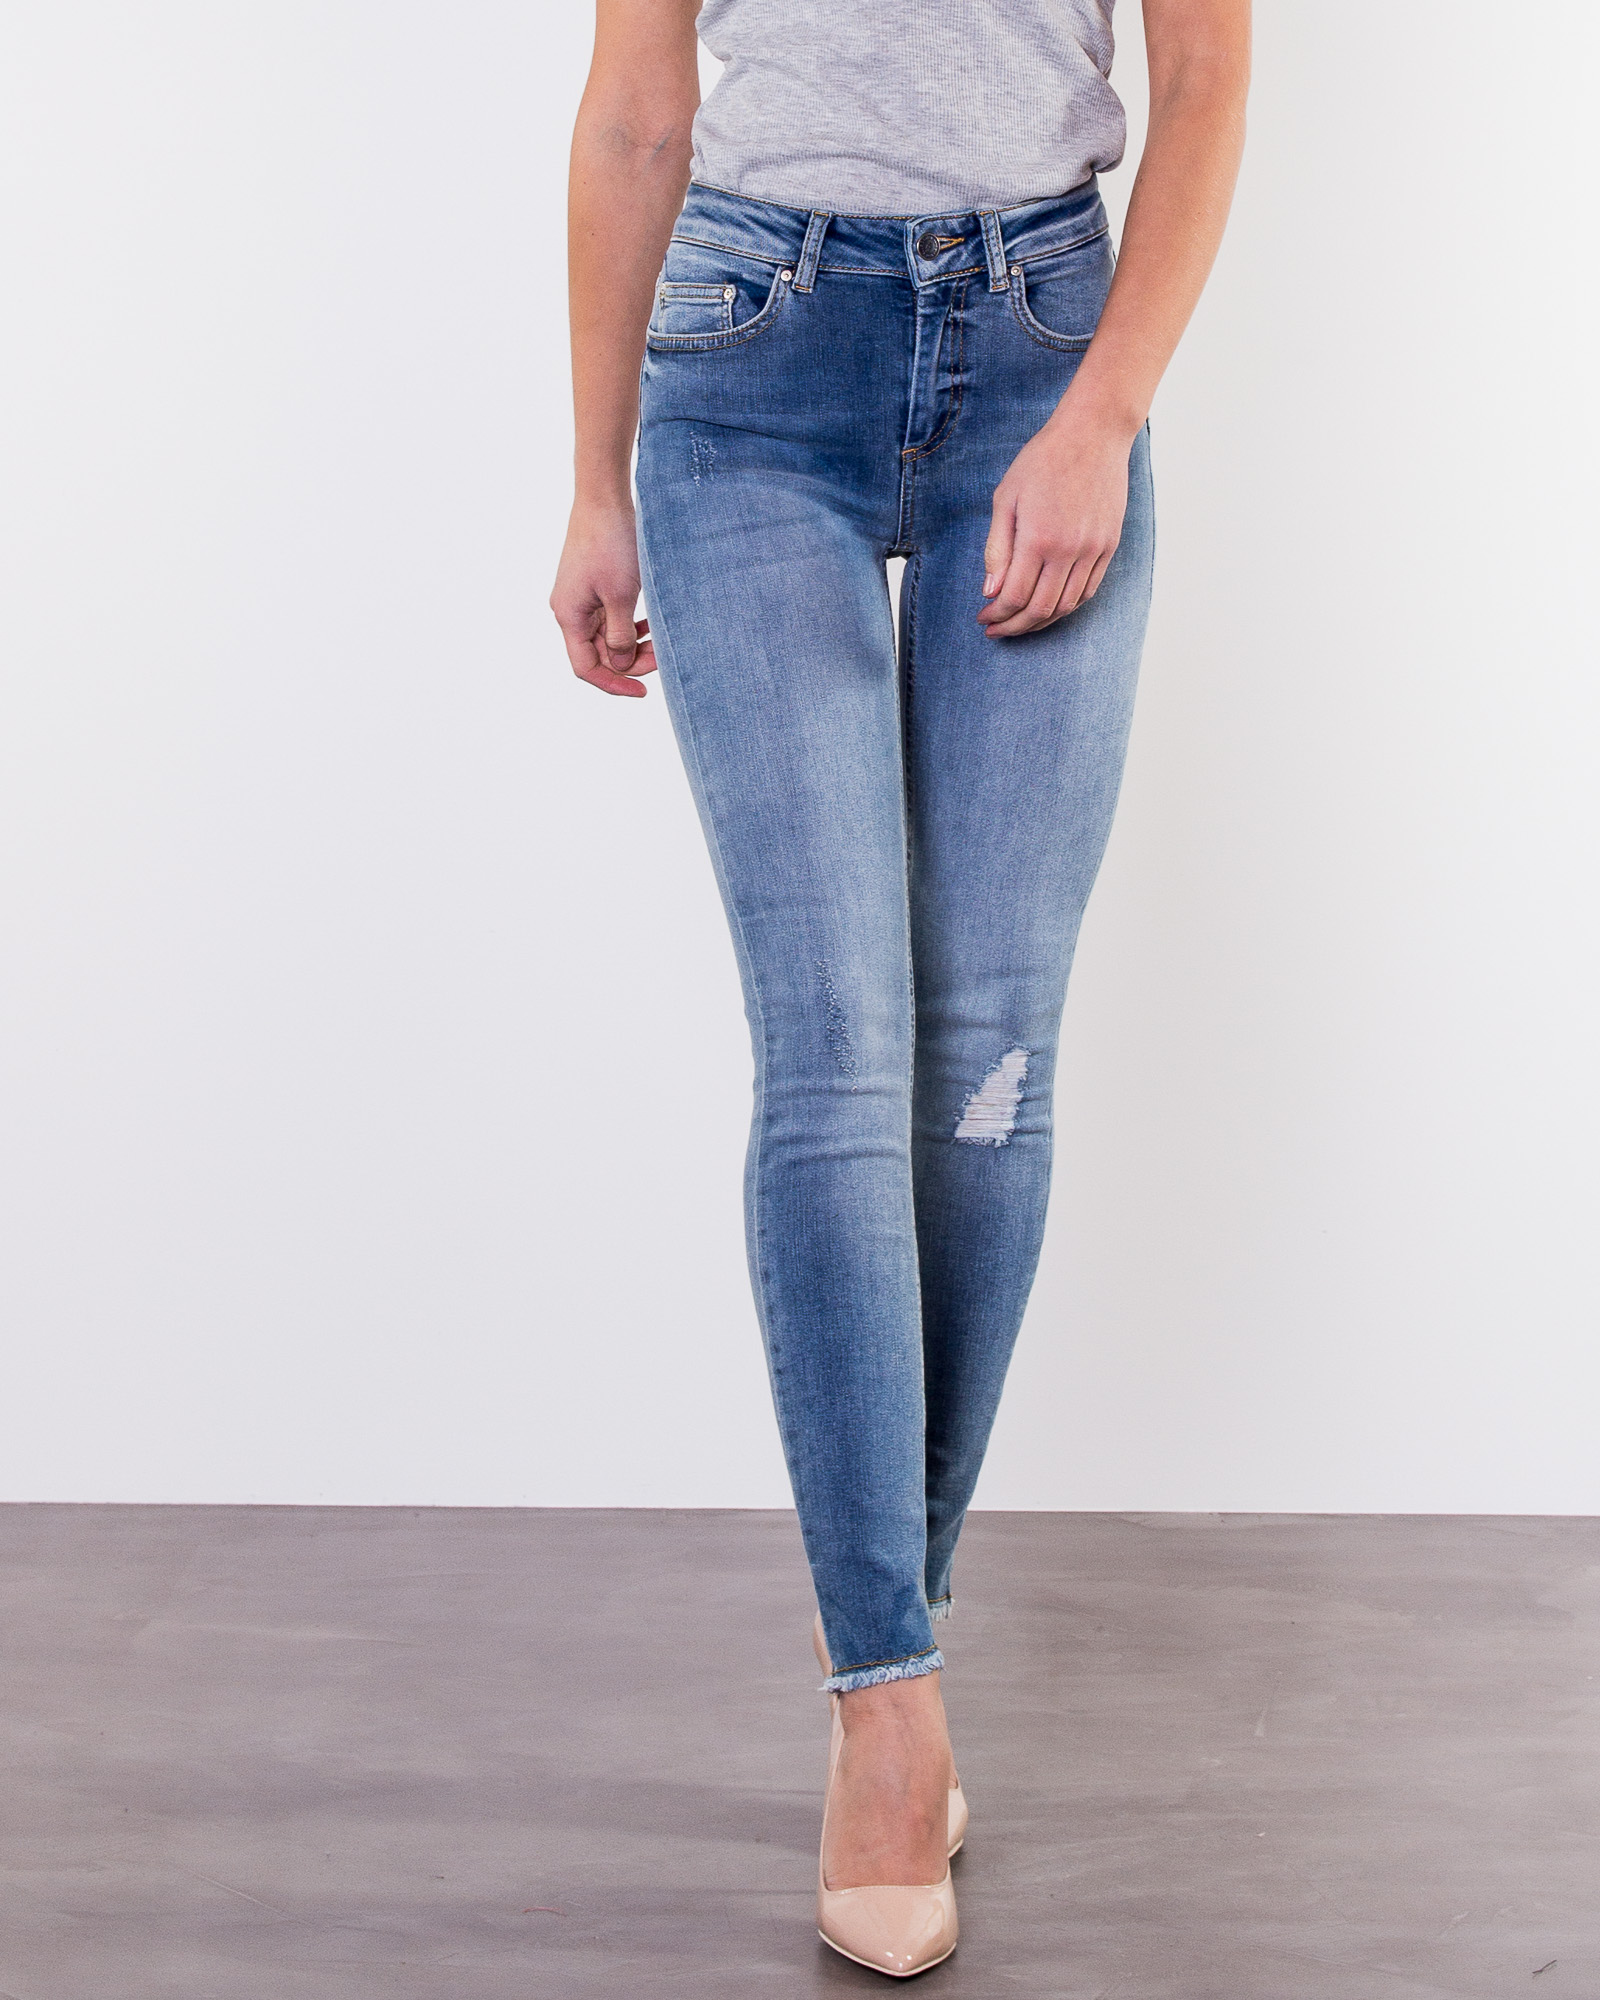 4ae04cdef2 Only, Blush Ankle Raw Jeans Light Blue Denim | Pants ...